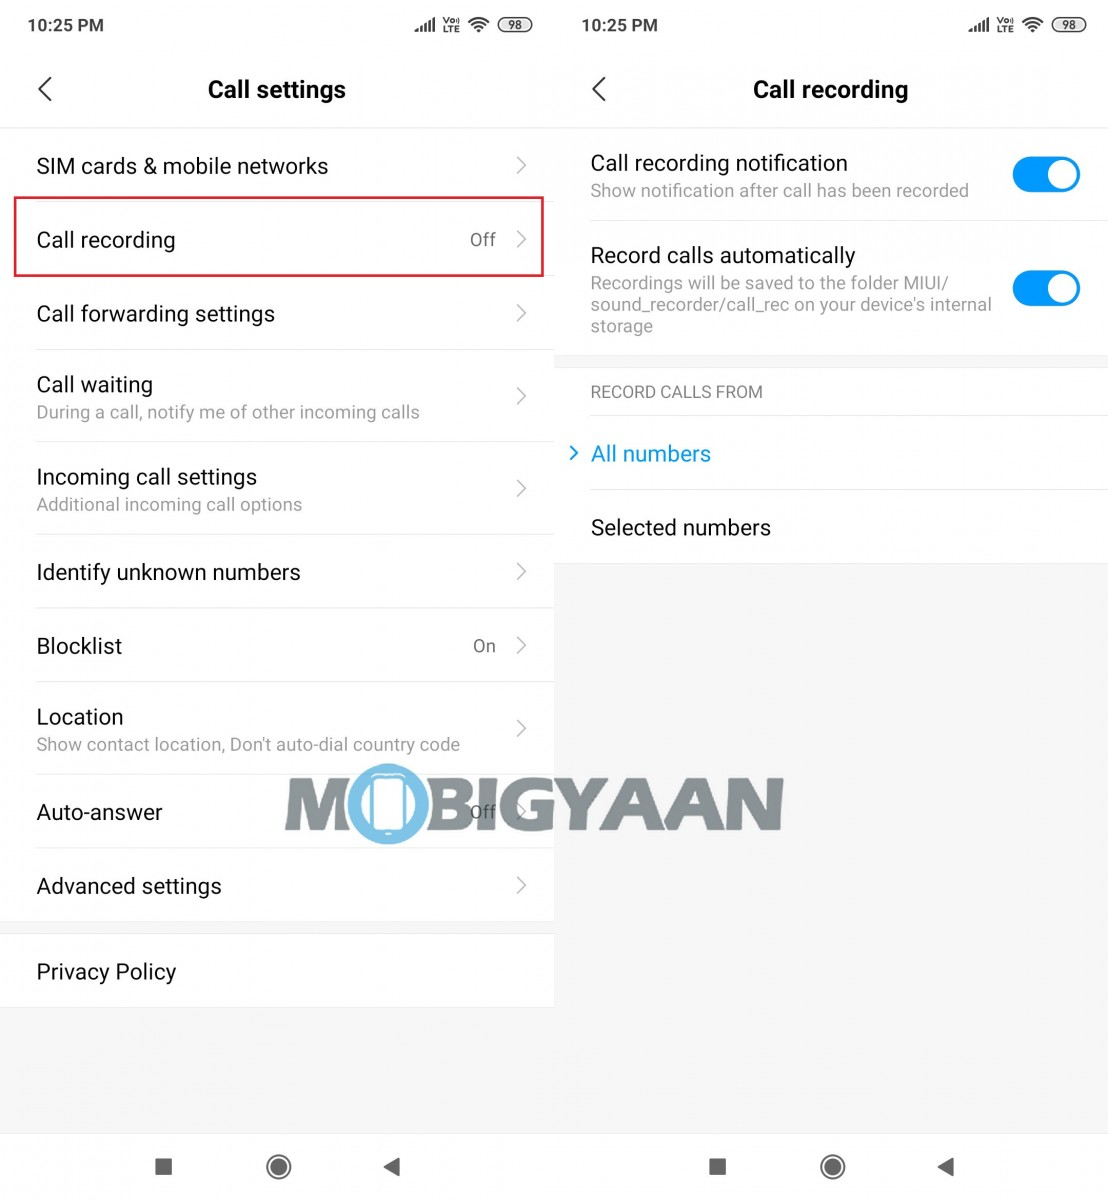 Redmi-K20-Call-Recording-1